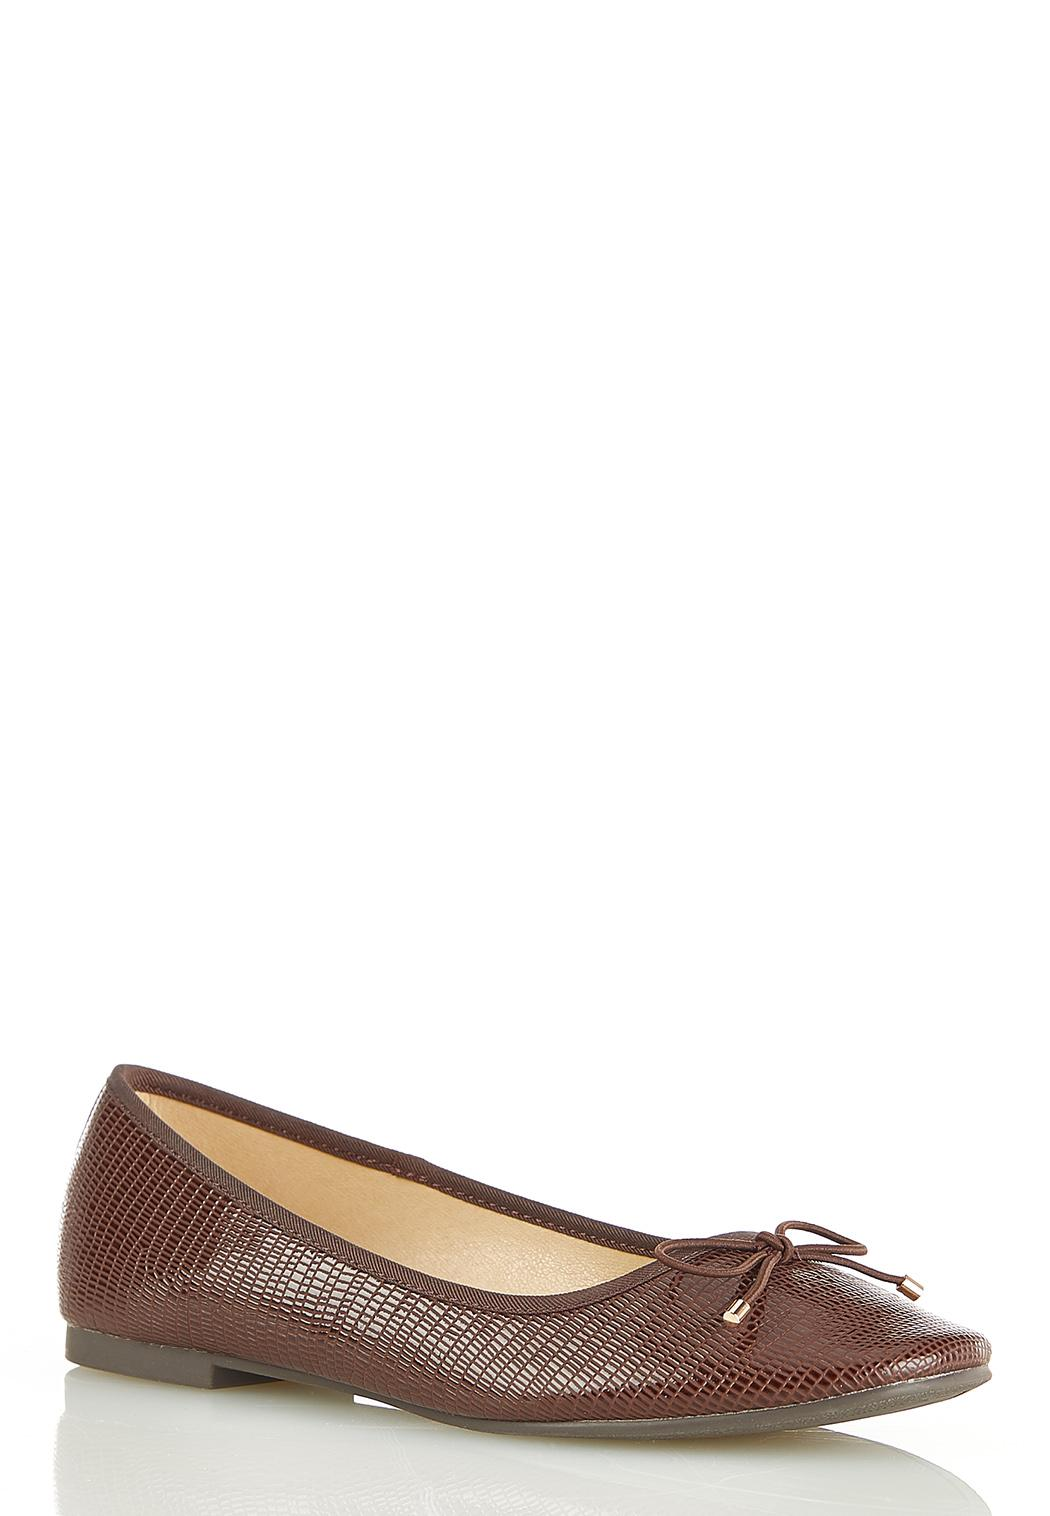 Textured Leather Bow Flats